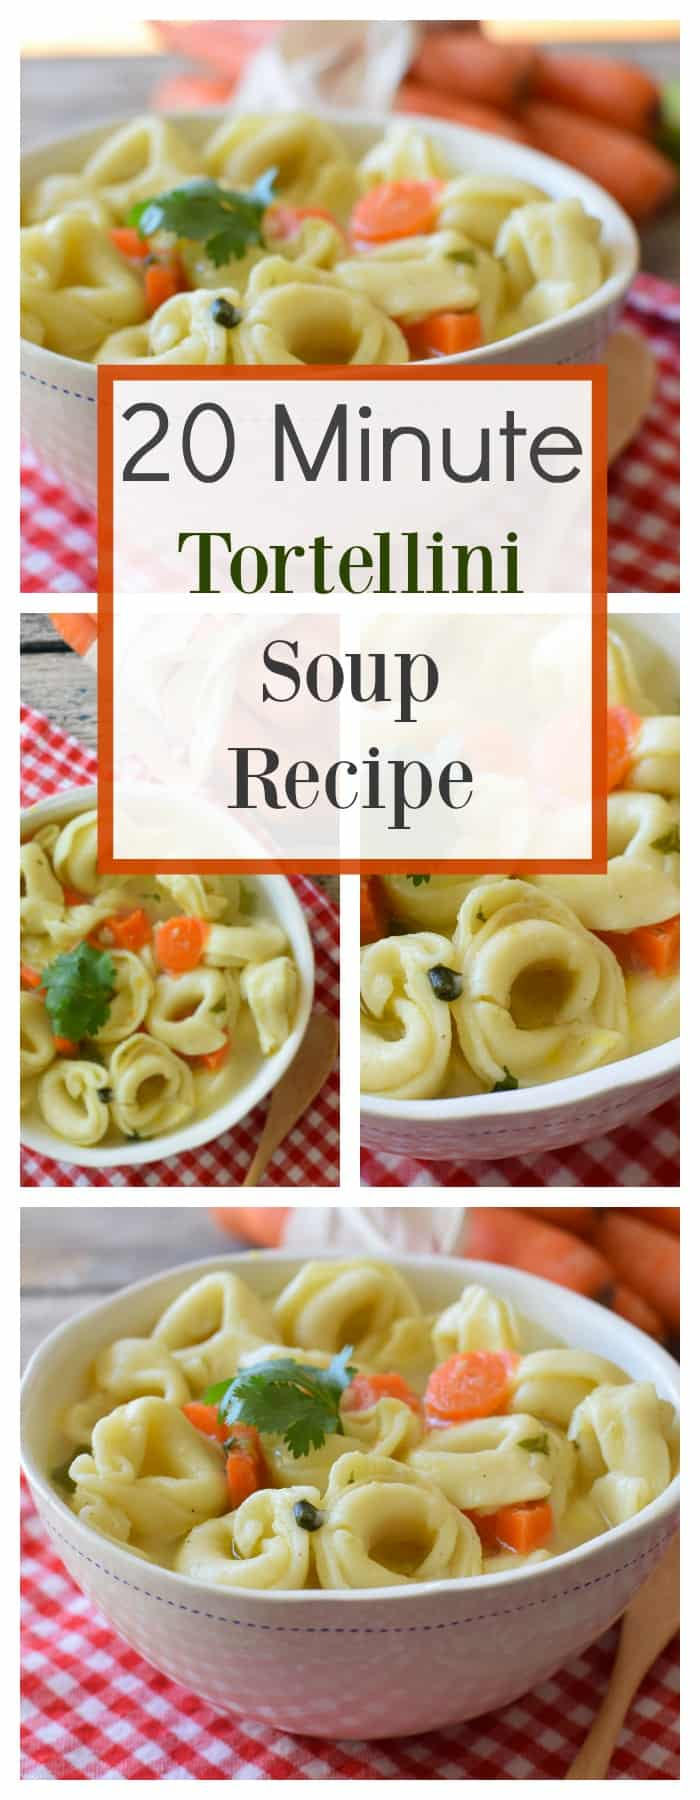 20 minute tortellini soup recipe